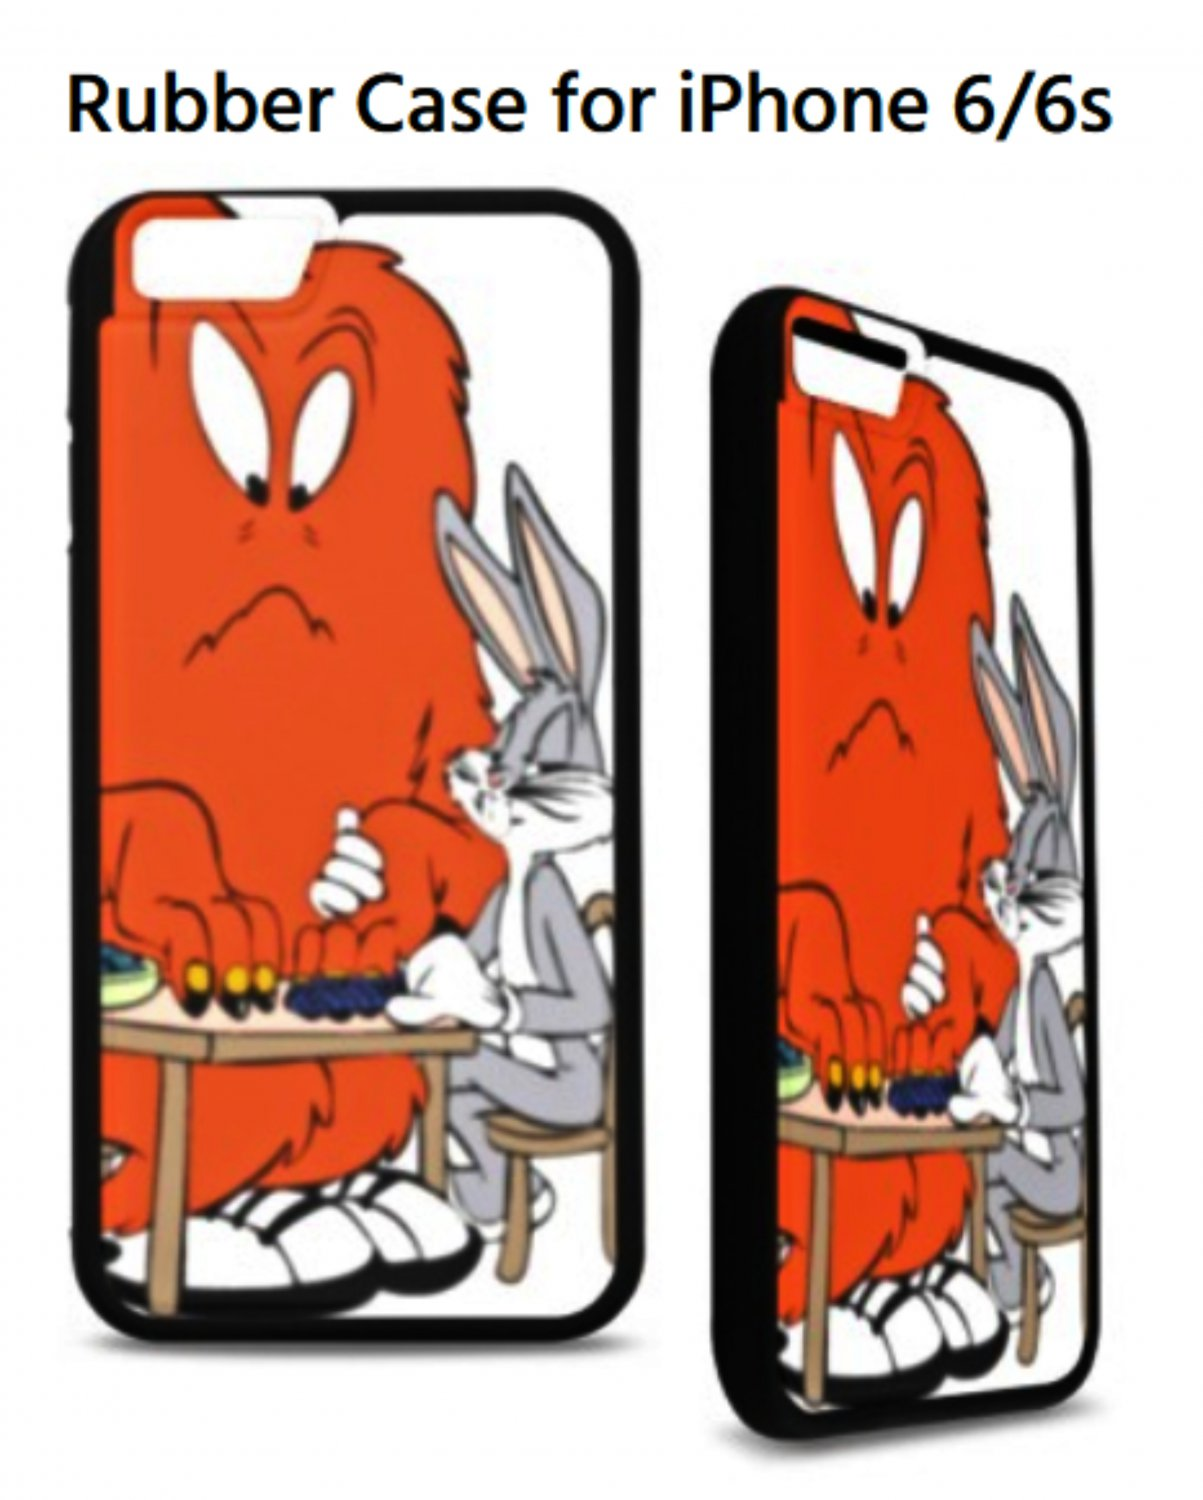 Gossamer & Bugs Rubber Case for iPhone 6/6s